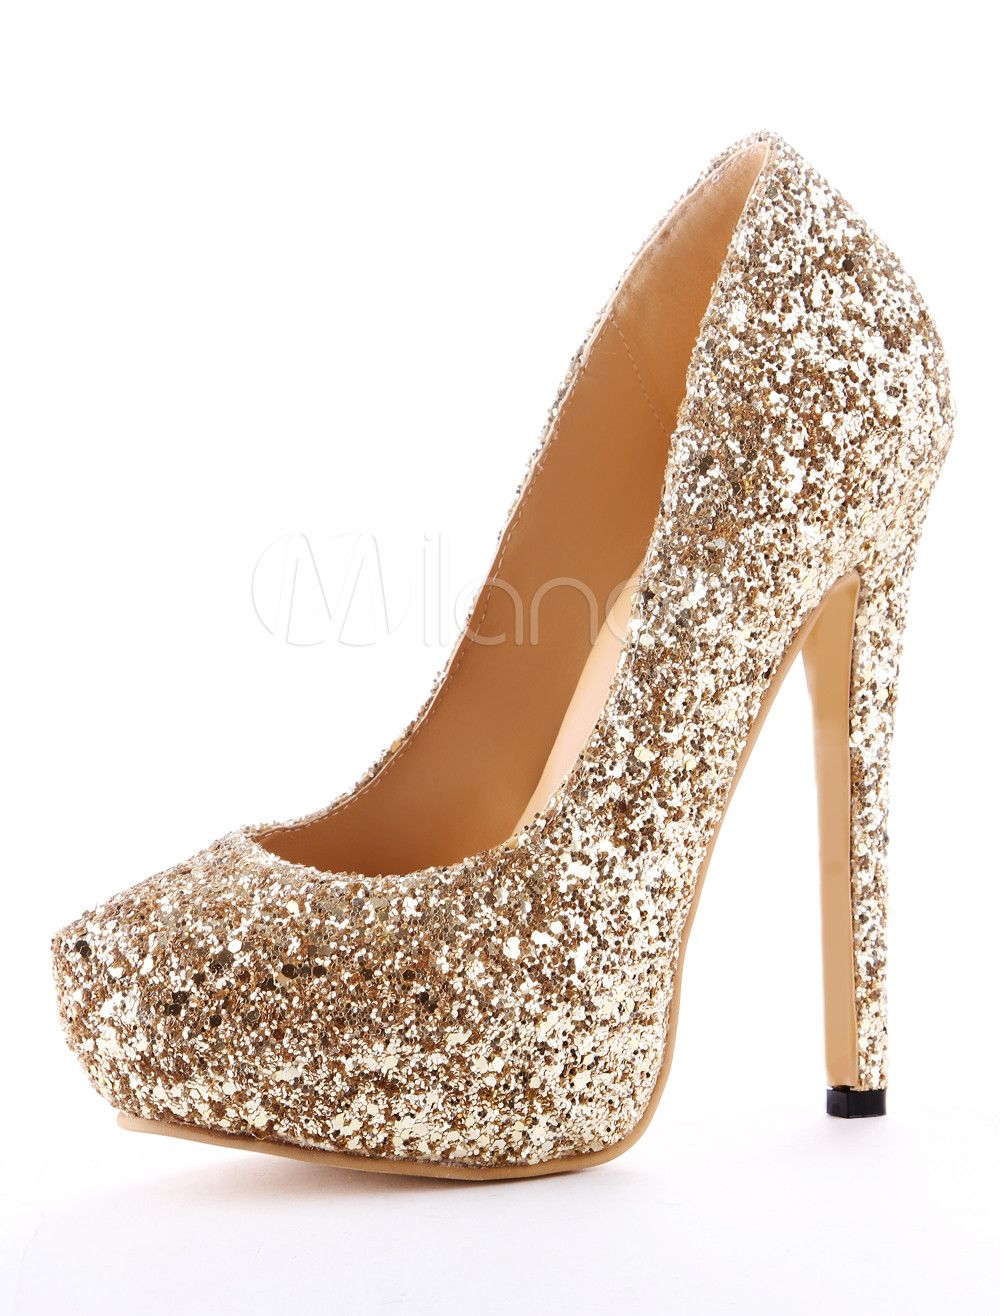 6cdb691aa53 Discover ideas about Cute Shoes. Daffodile Diamond style Pump (inspired by Christian  Louboutin) ...